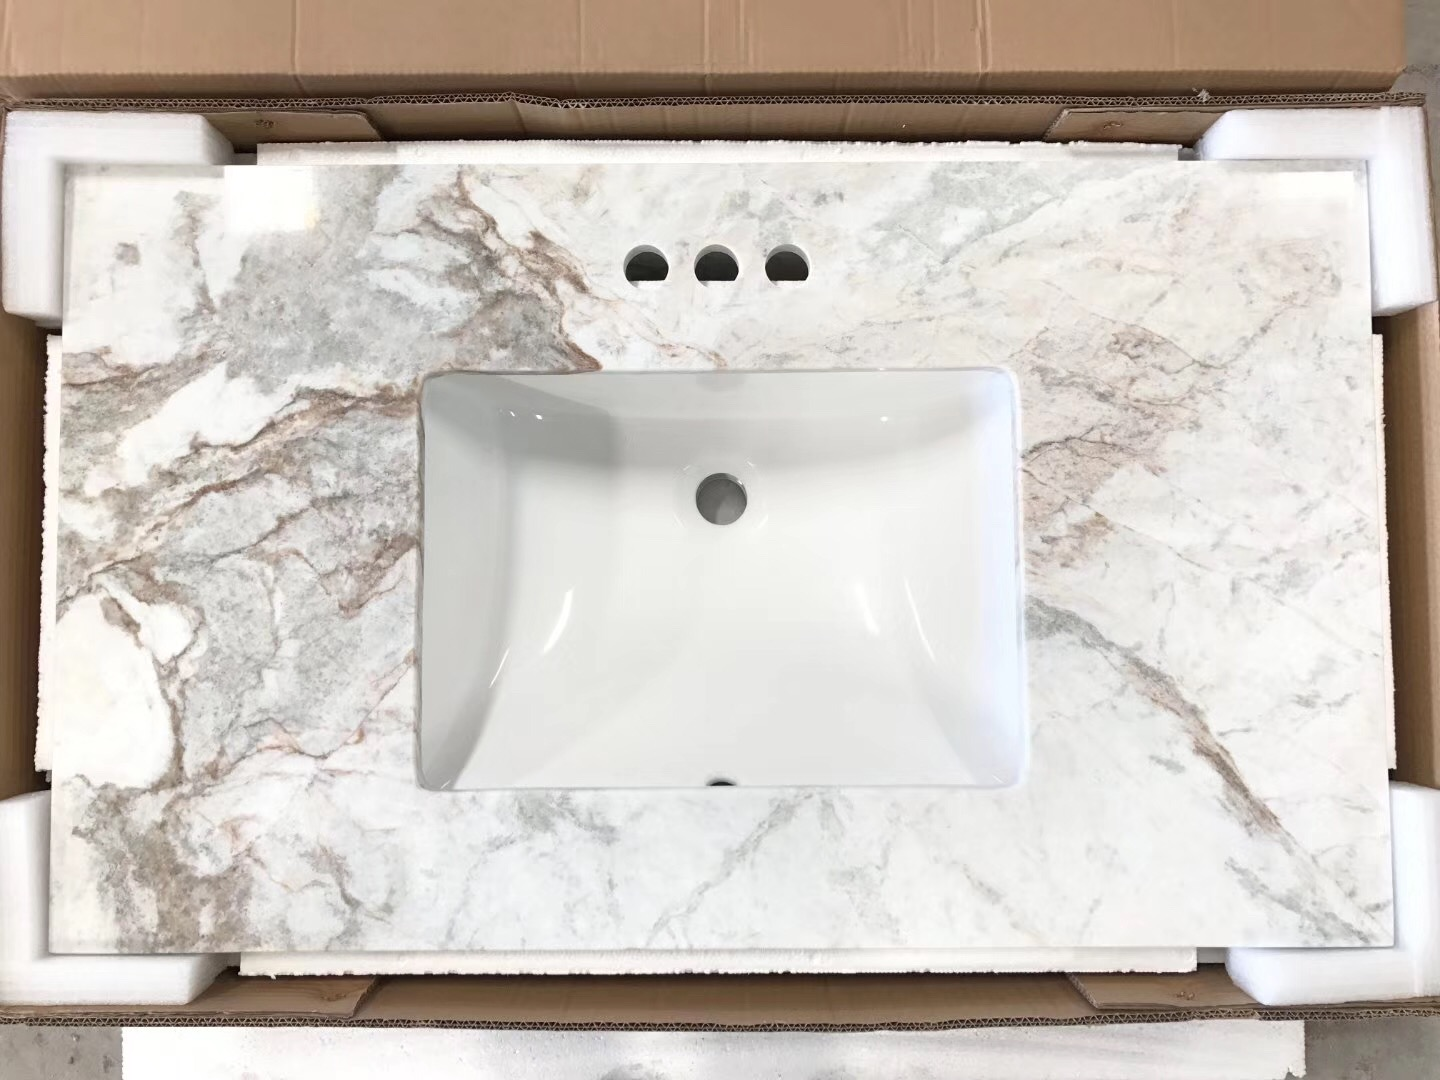 North Pearl White Marble countertop for bathroom Glorious White Marble kitchen countertop